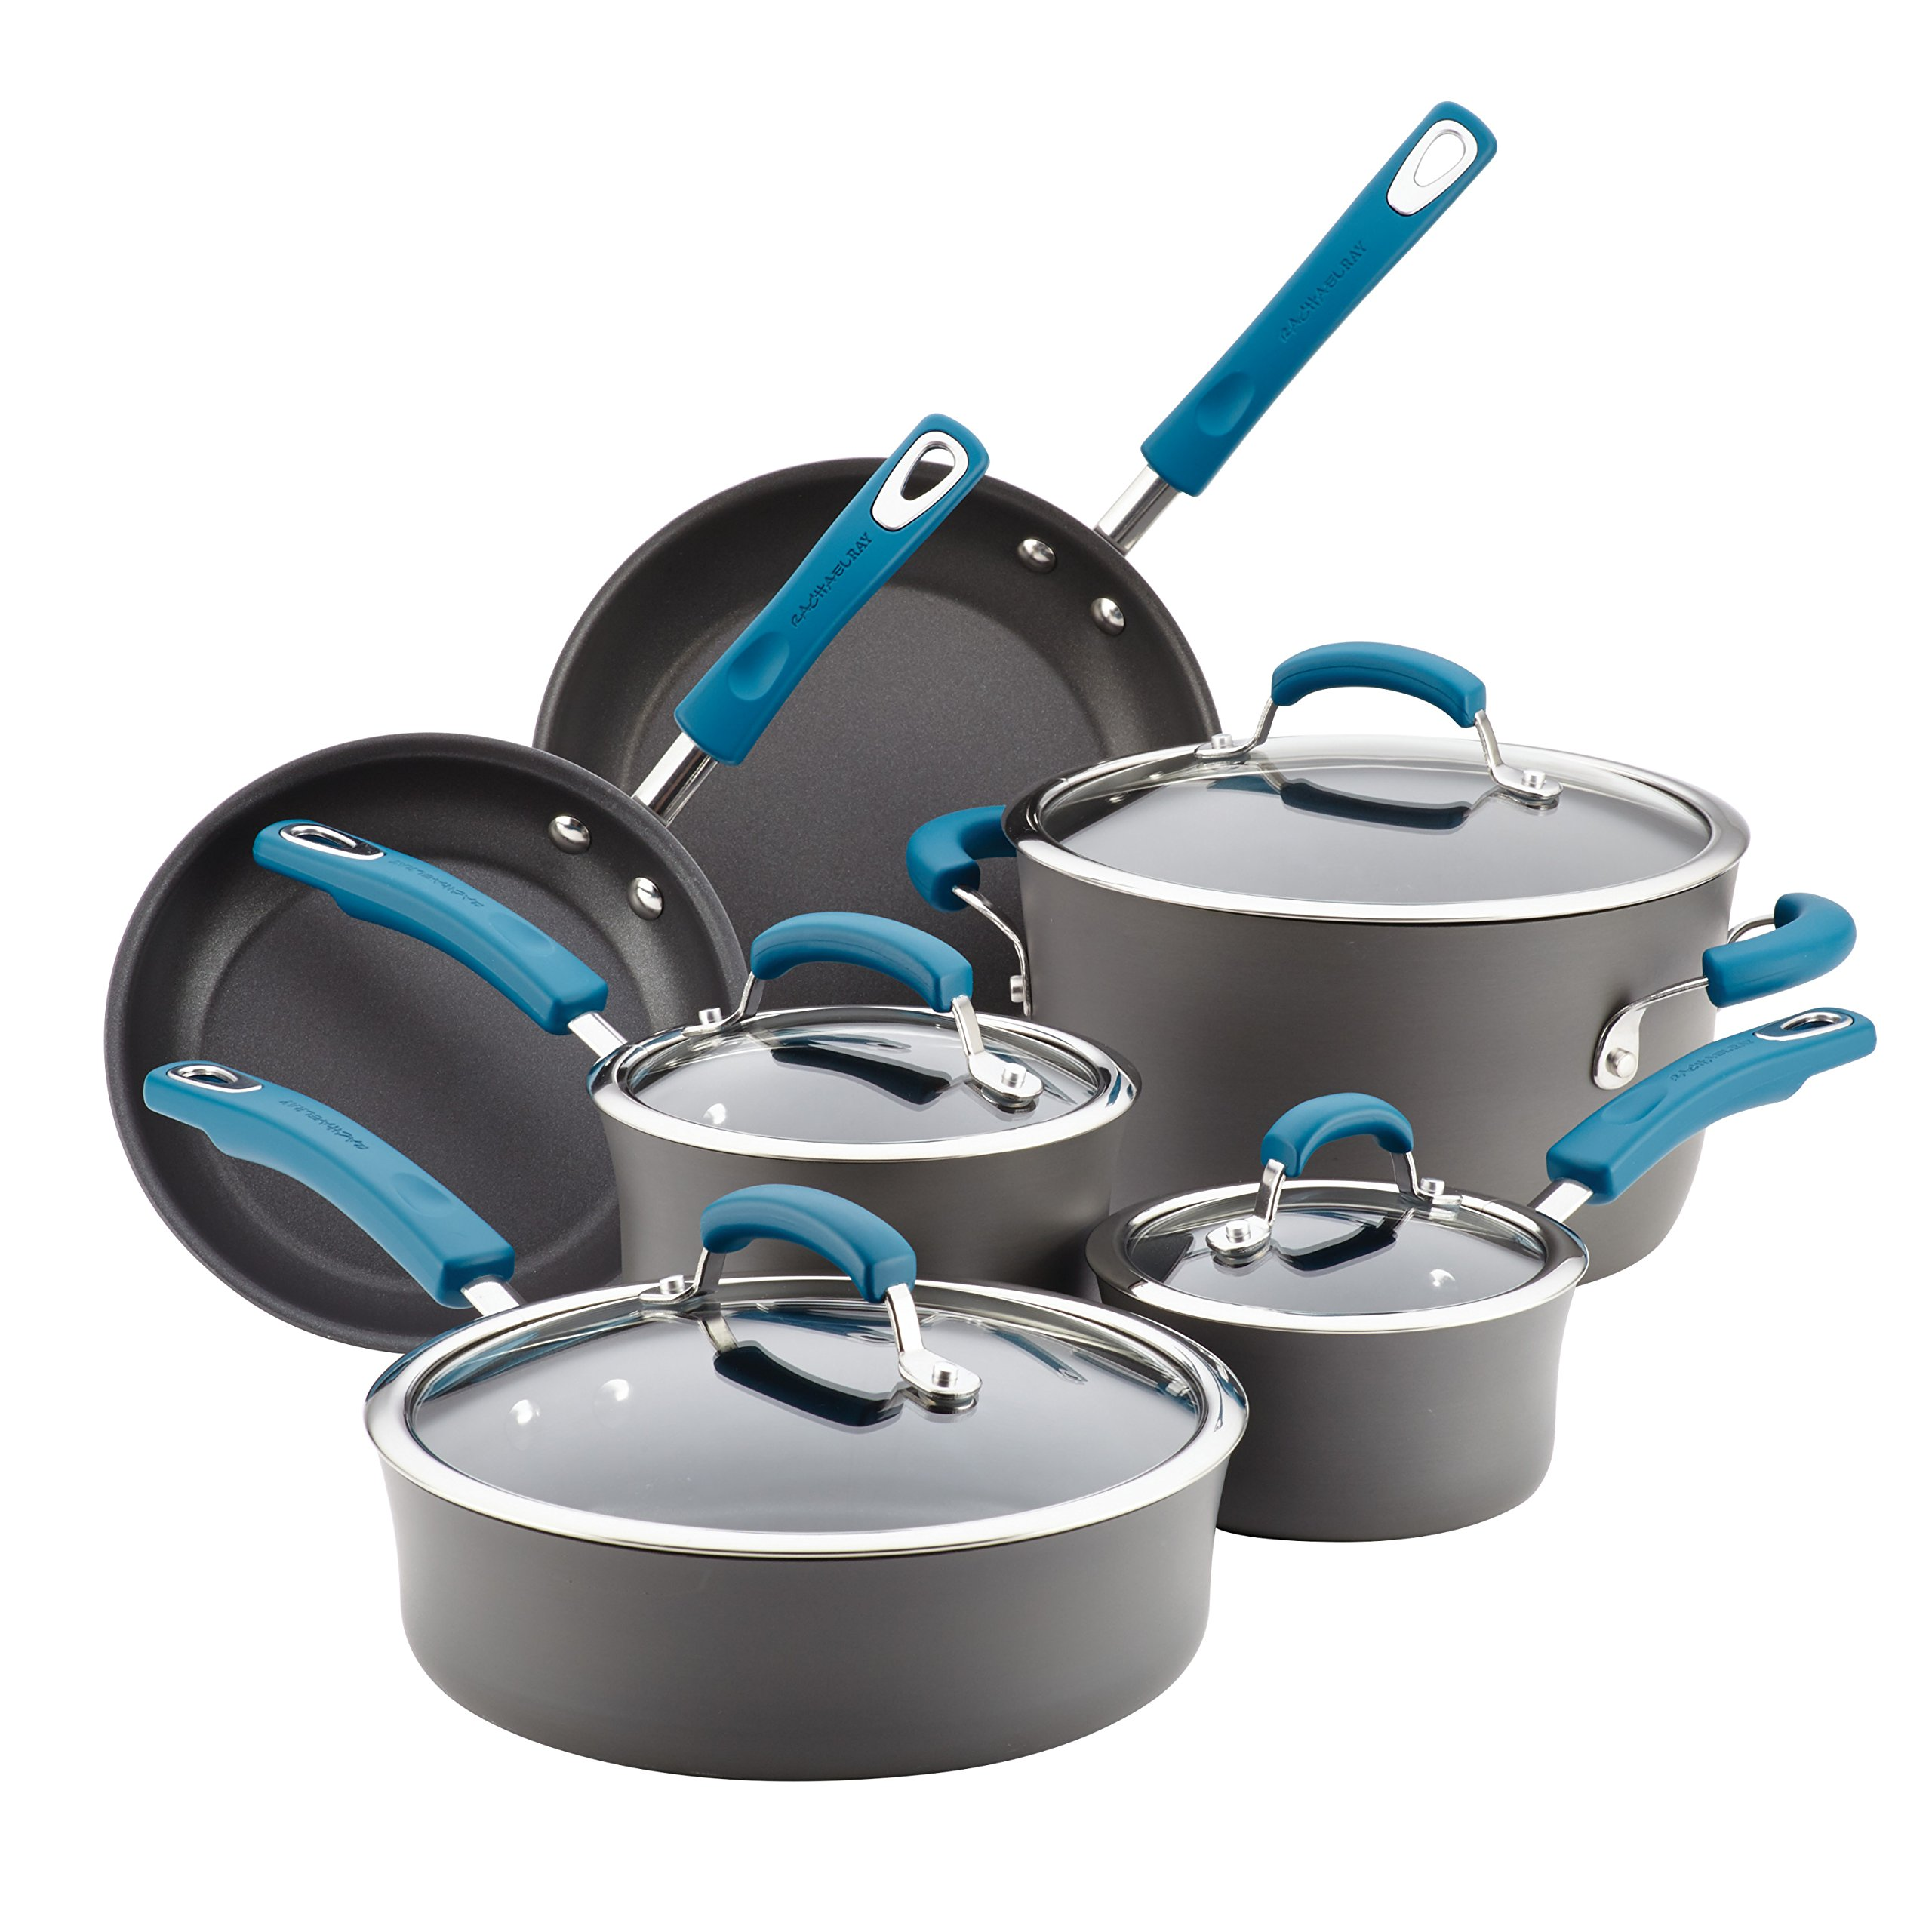 Rachael Ray 10 Piece Hard-Anodized Aluminum Nonstick Cookware Set with Marine Blue Handles by Rachael Ray